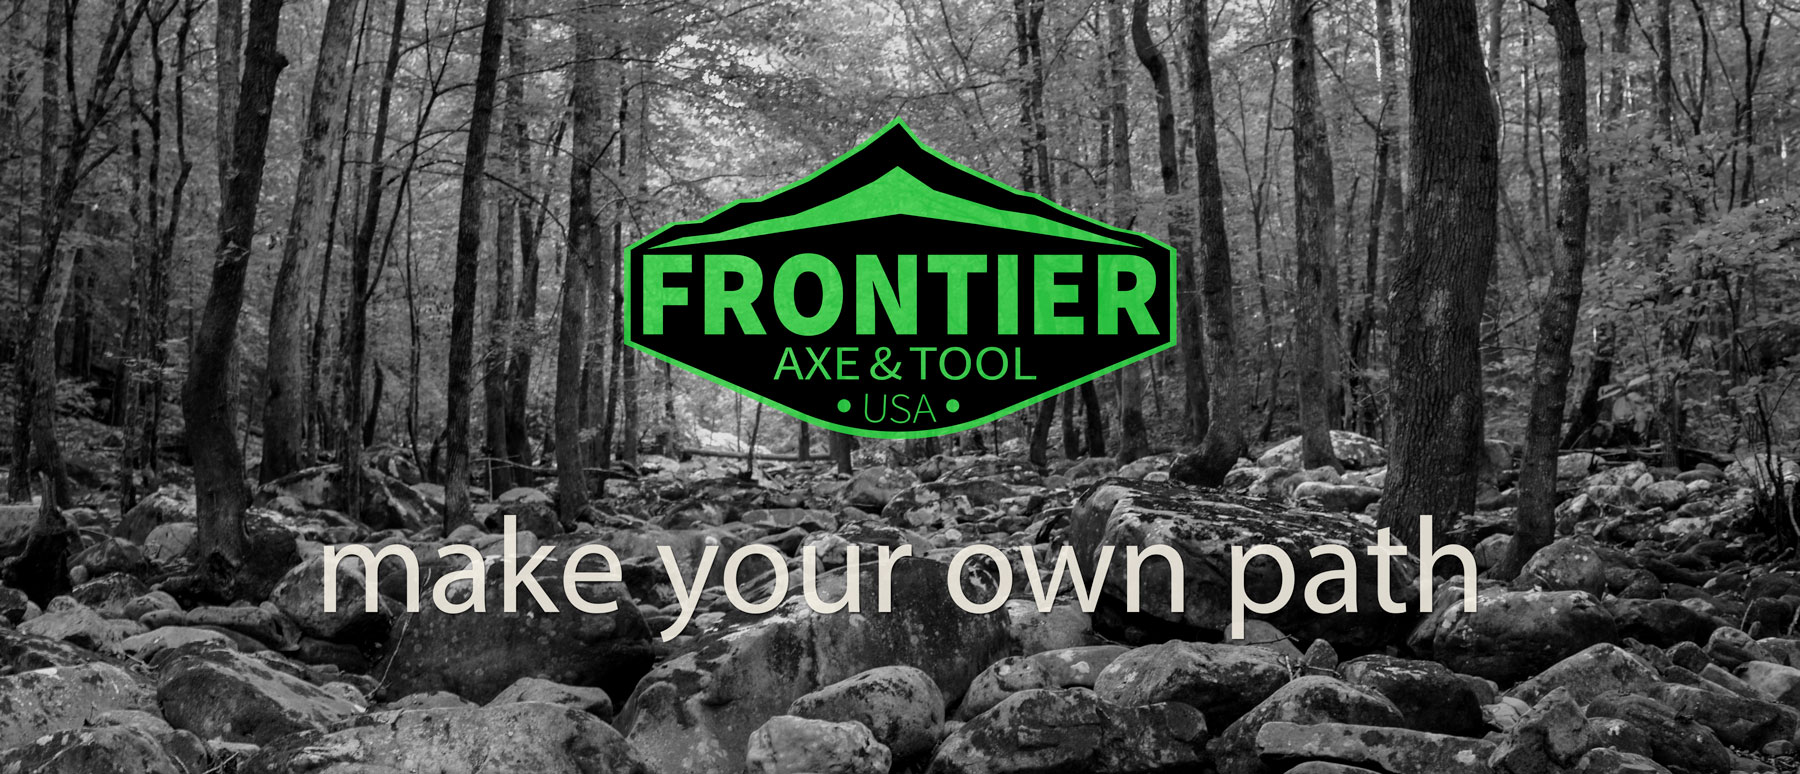 Frontier Axe and Tool Hand Tools Made in the USA